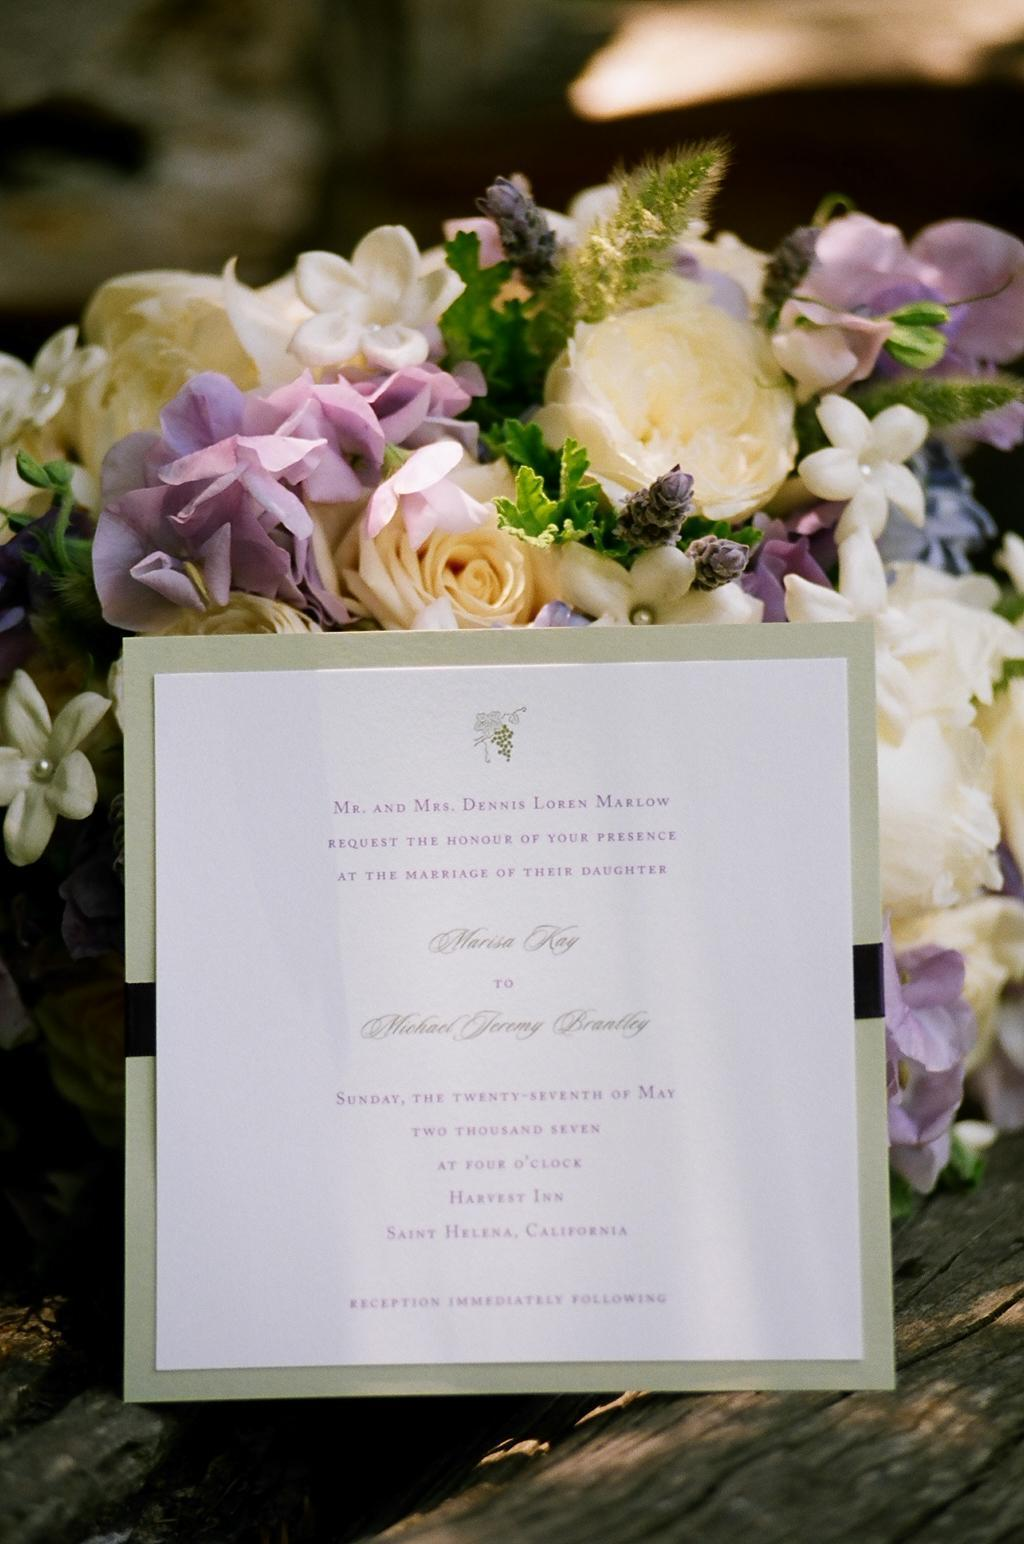 Flowers & Decor, Stationery, purple, Vineyard, Invitations, Wedding